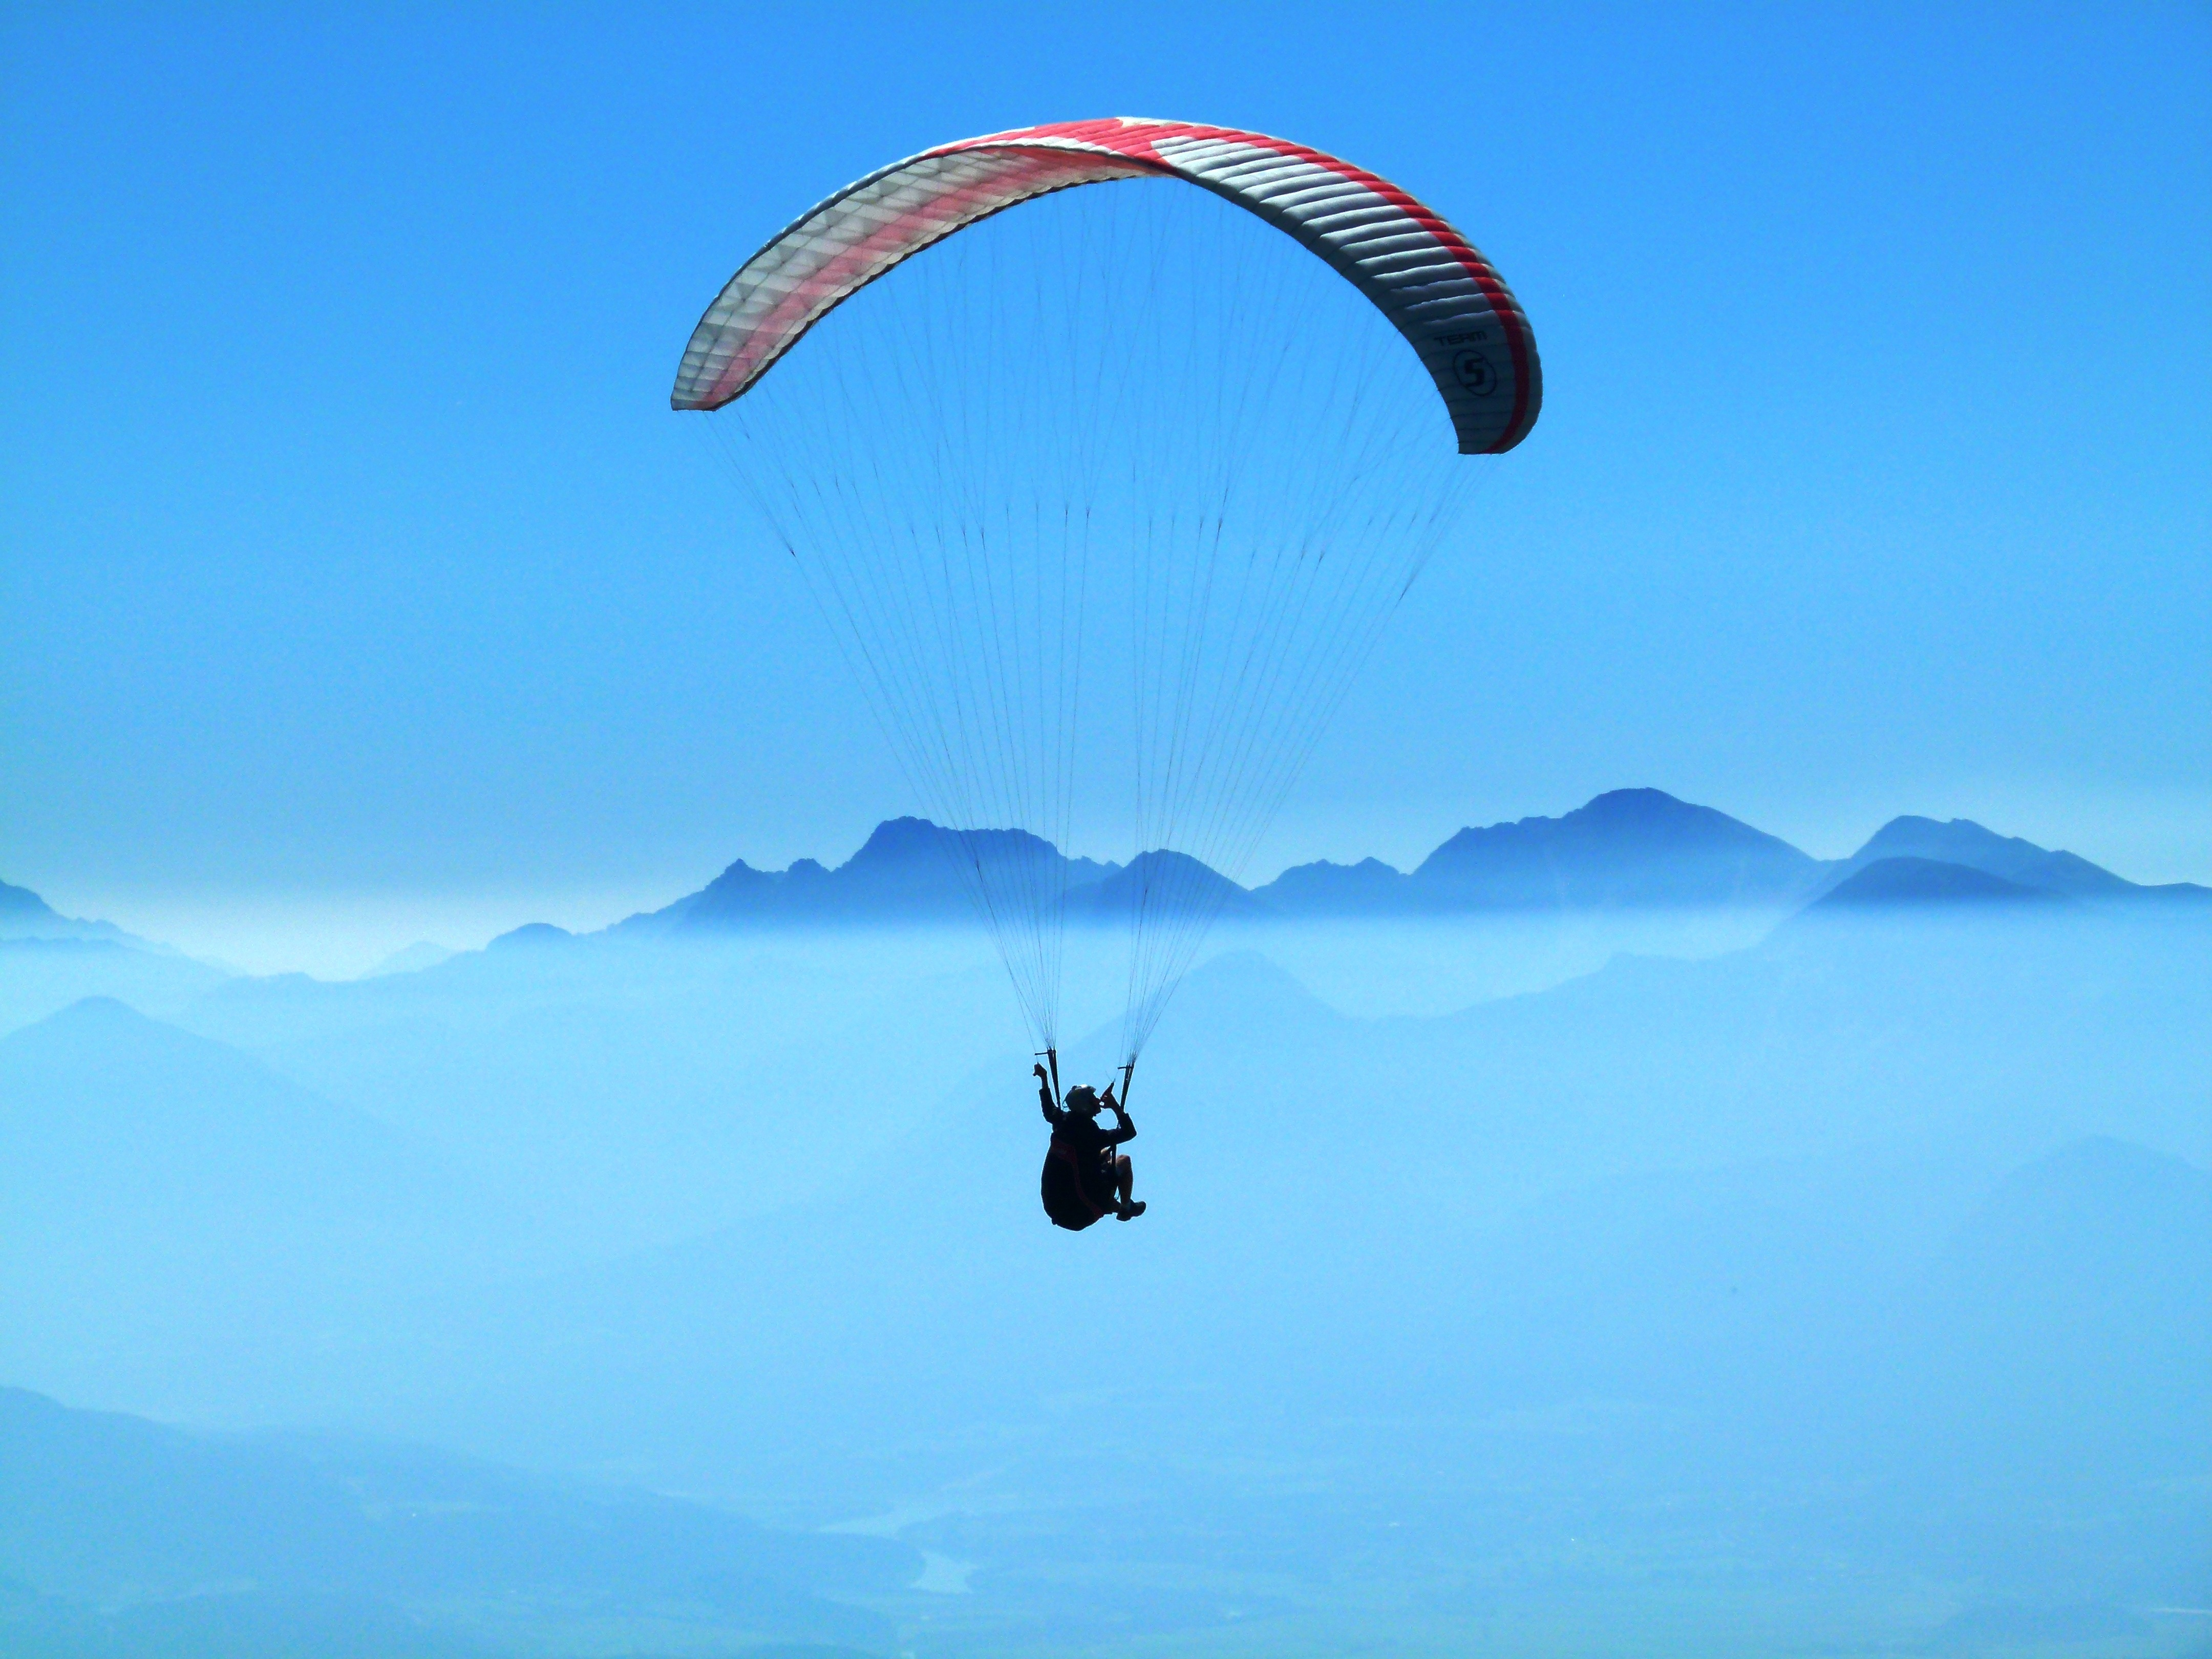 Red Car Wallpaper Download Person Using Red Parachute On Mid Air 183 Free Stock Photo